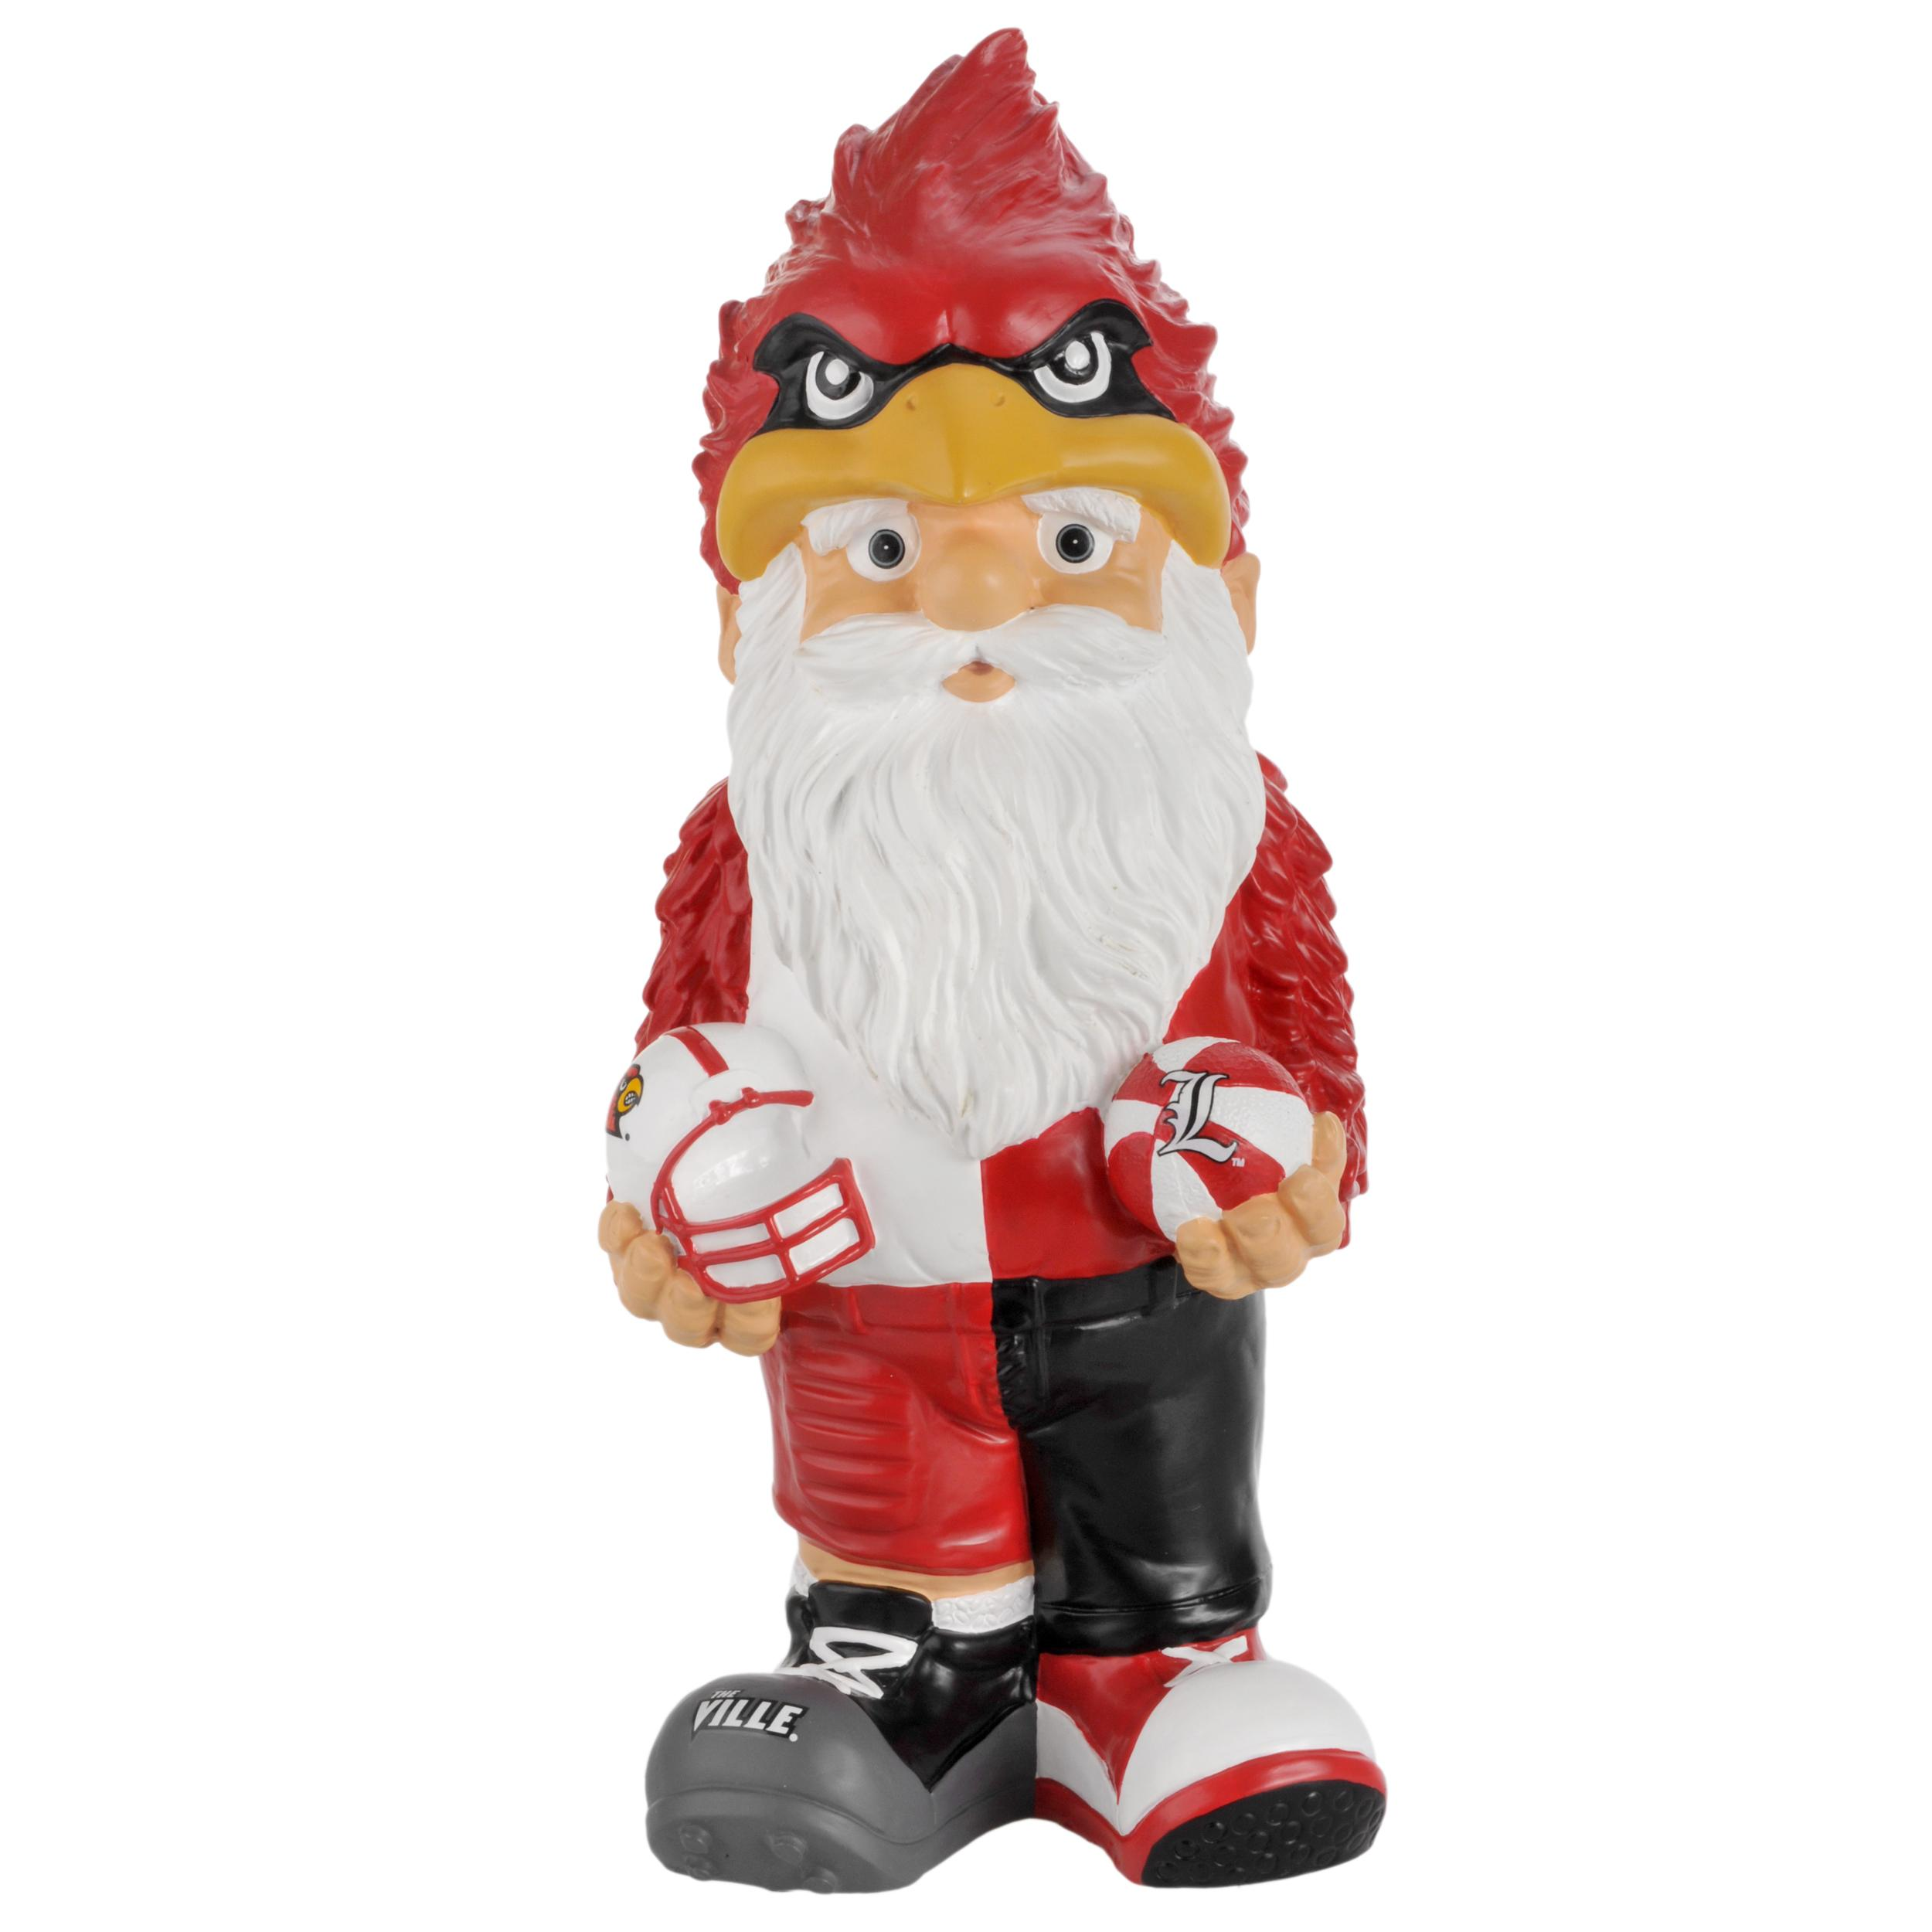 Louisville Cardinals 11-inch Thematic Garden Gnome - Thumbnail 2